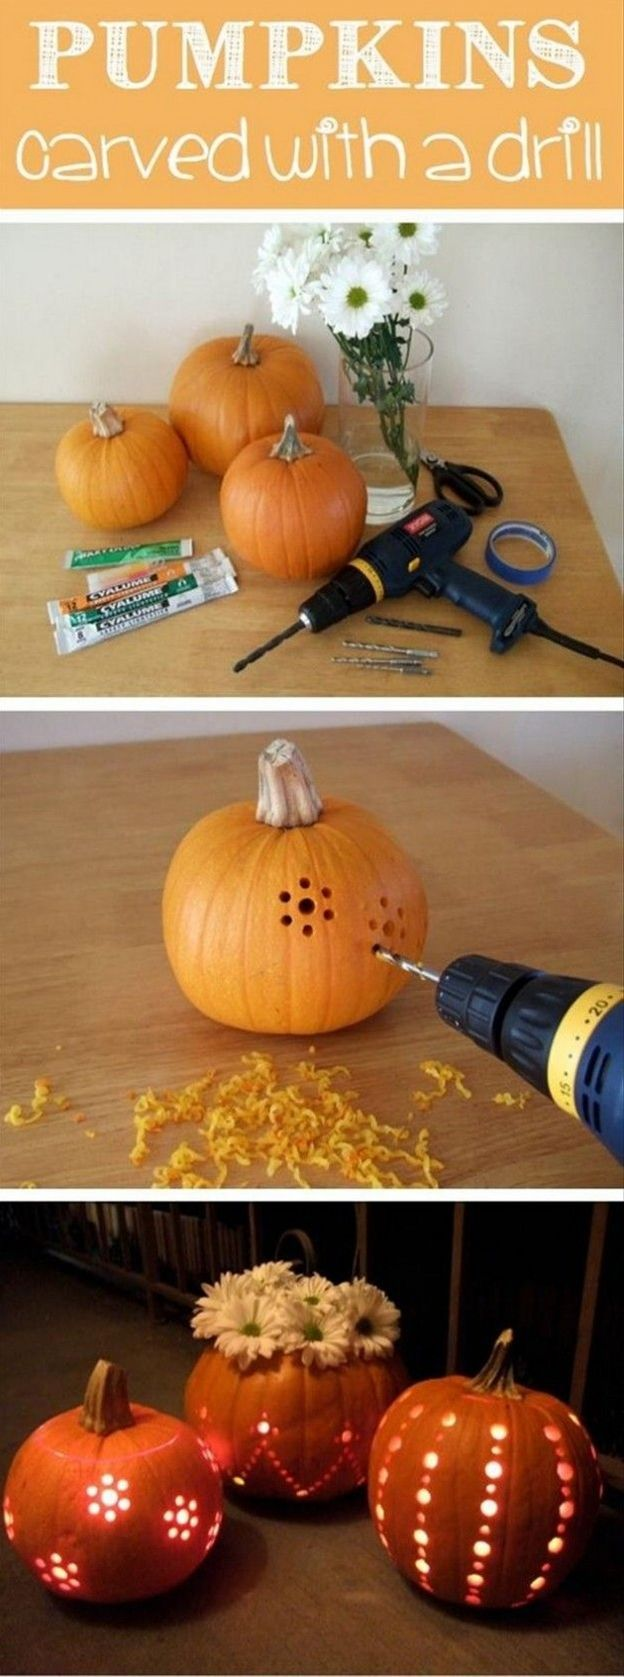 DIY Pumpkins Carved With a Drill